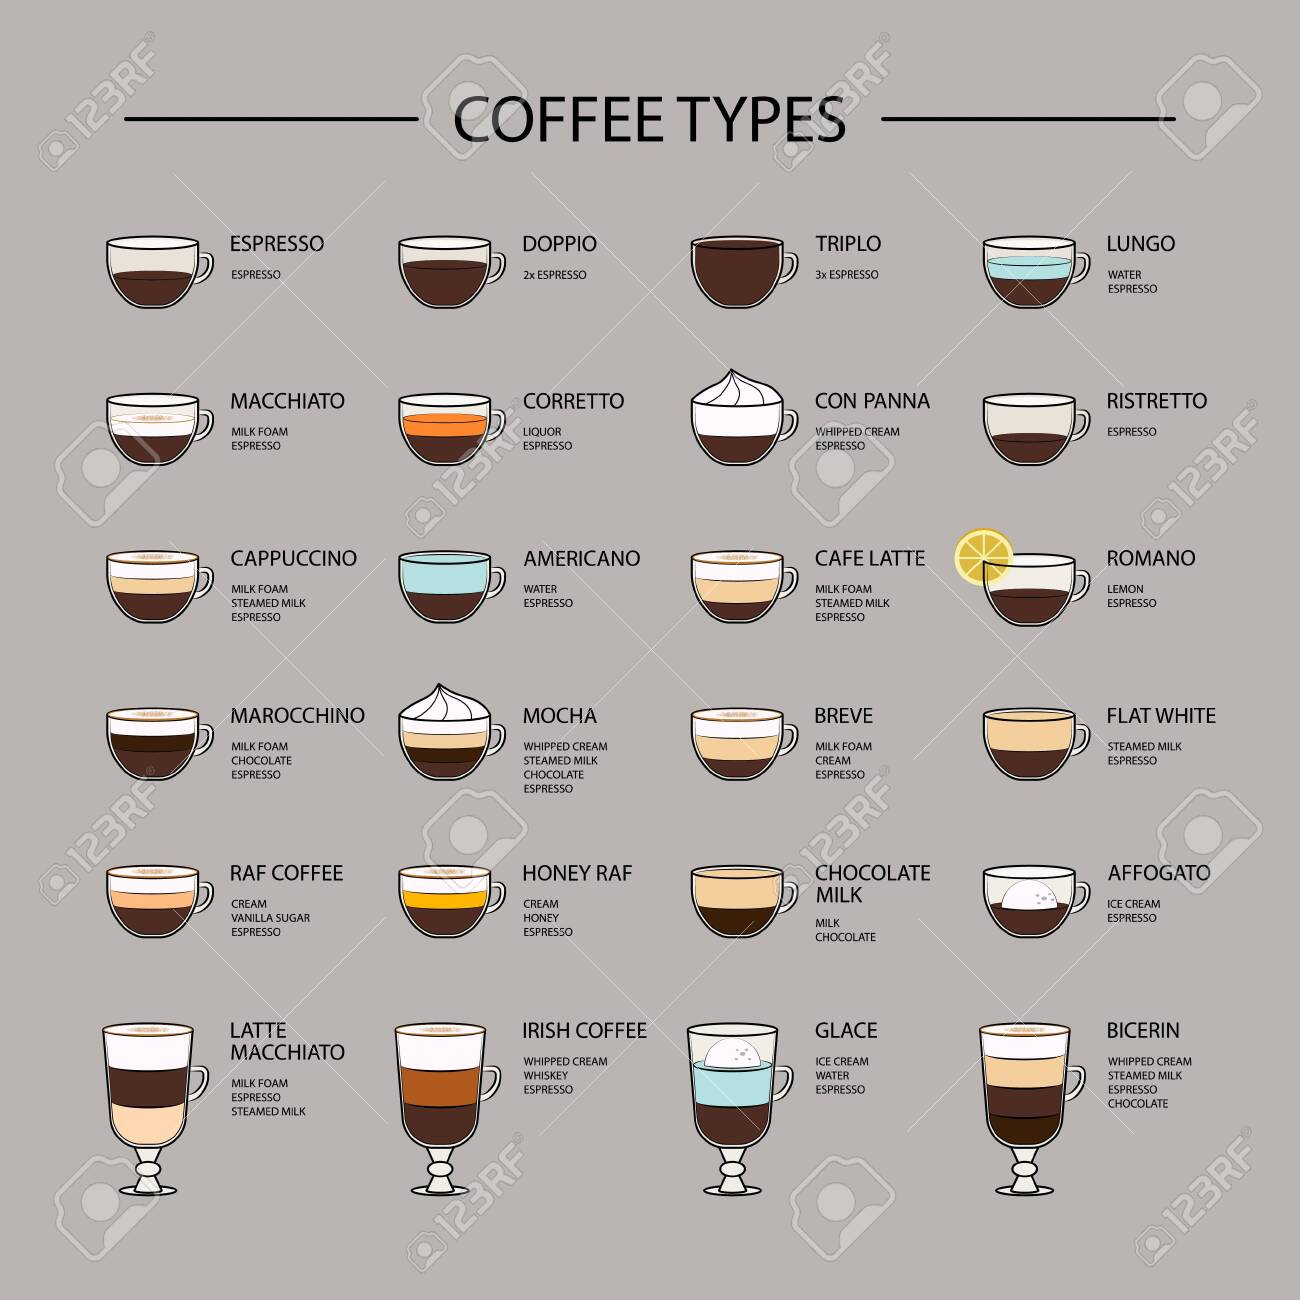 Set of coffee types menu. Espresso based coffee drink recipes. Infographic of coffee types and their preparation. - 148379774